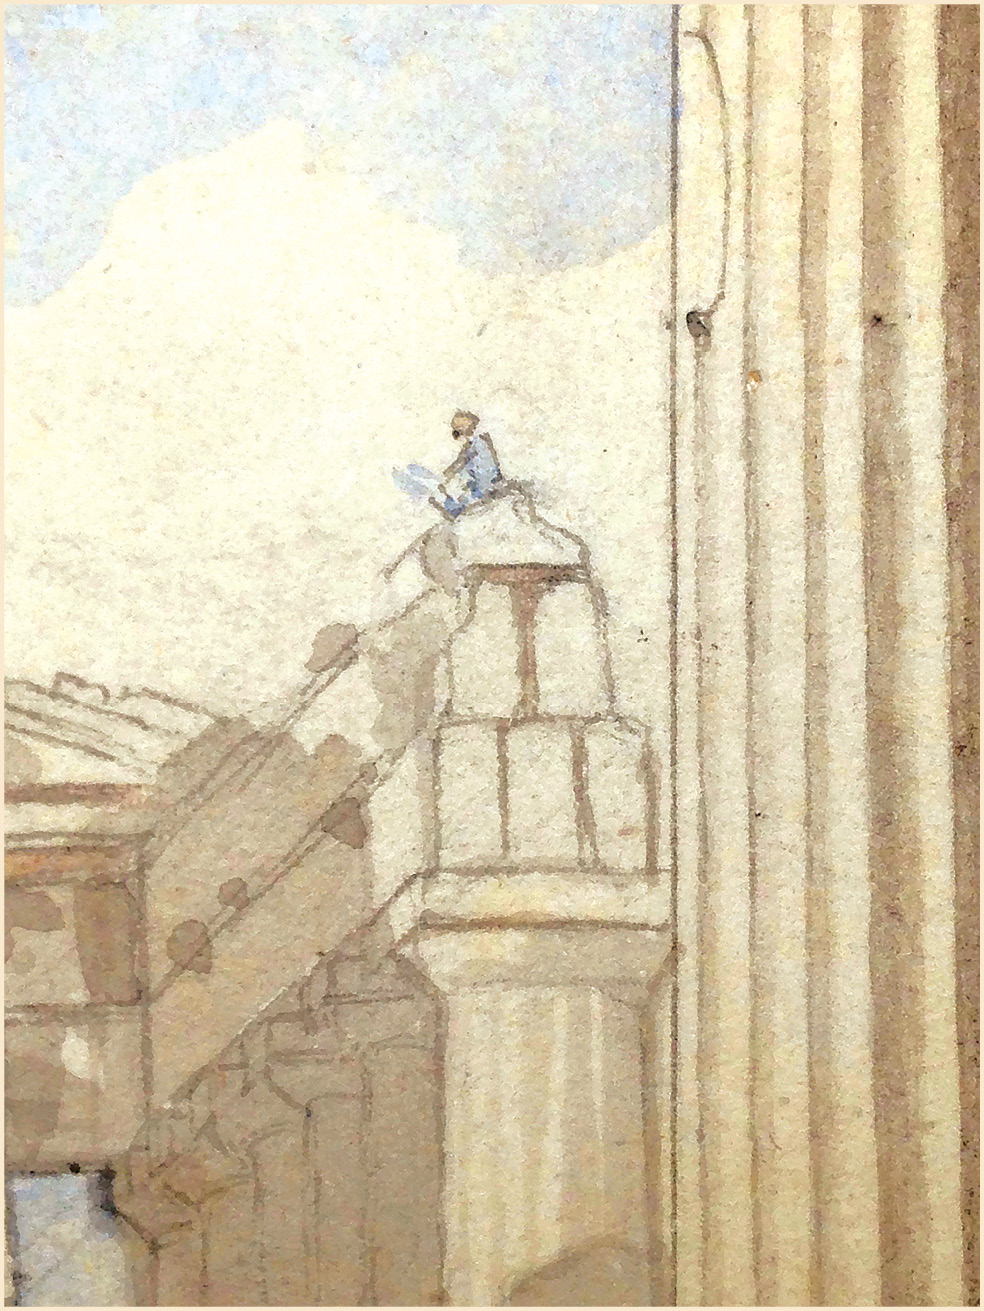 RIGHT In this detail of the above image, Pars is visible sketching on top of the Parthenon.